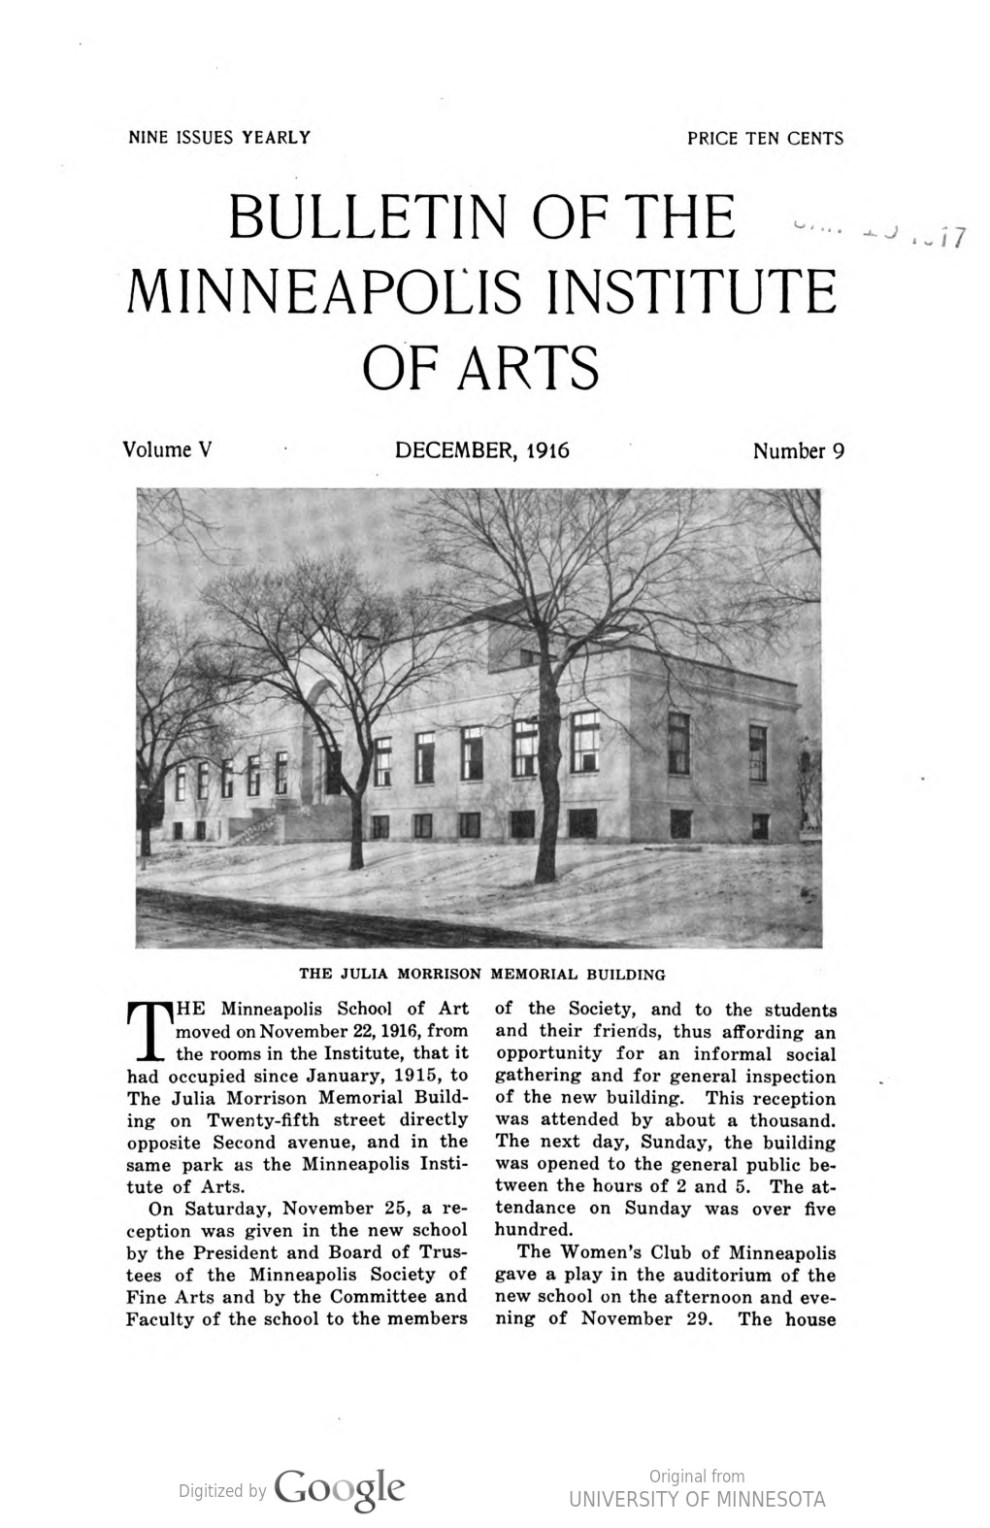 "Bulletin of the Minneapolis Institute of Arts, The Minneapolis Institute of Arts, Minneapolis, MN, ""Notes and accessions : Changes in the Martin B. Koon memorial collection"", volume 5, number 9, December, 1916, page 74, not illustrated."